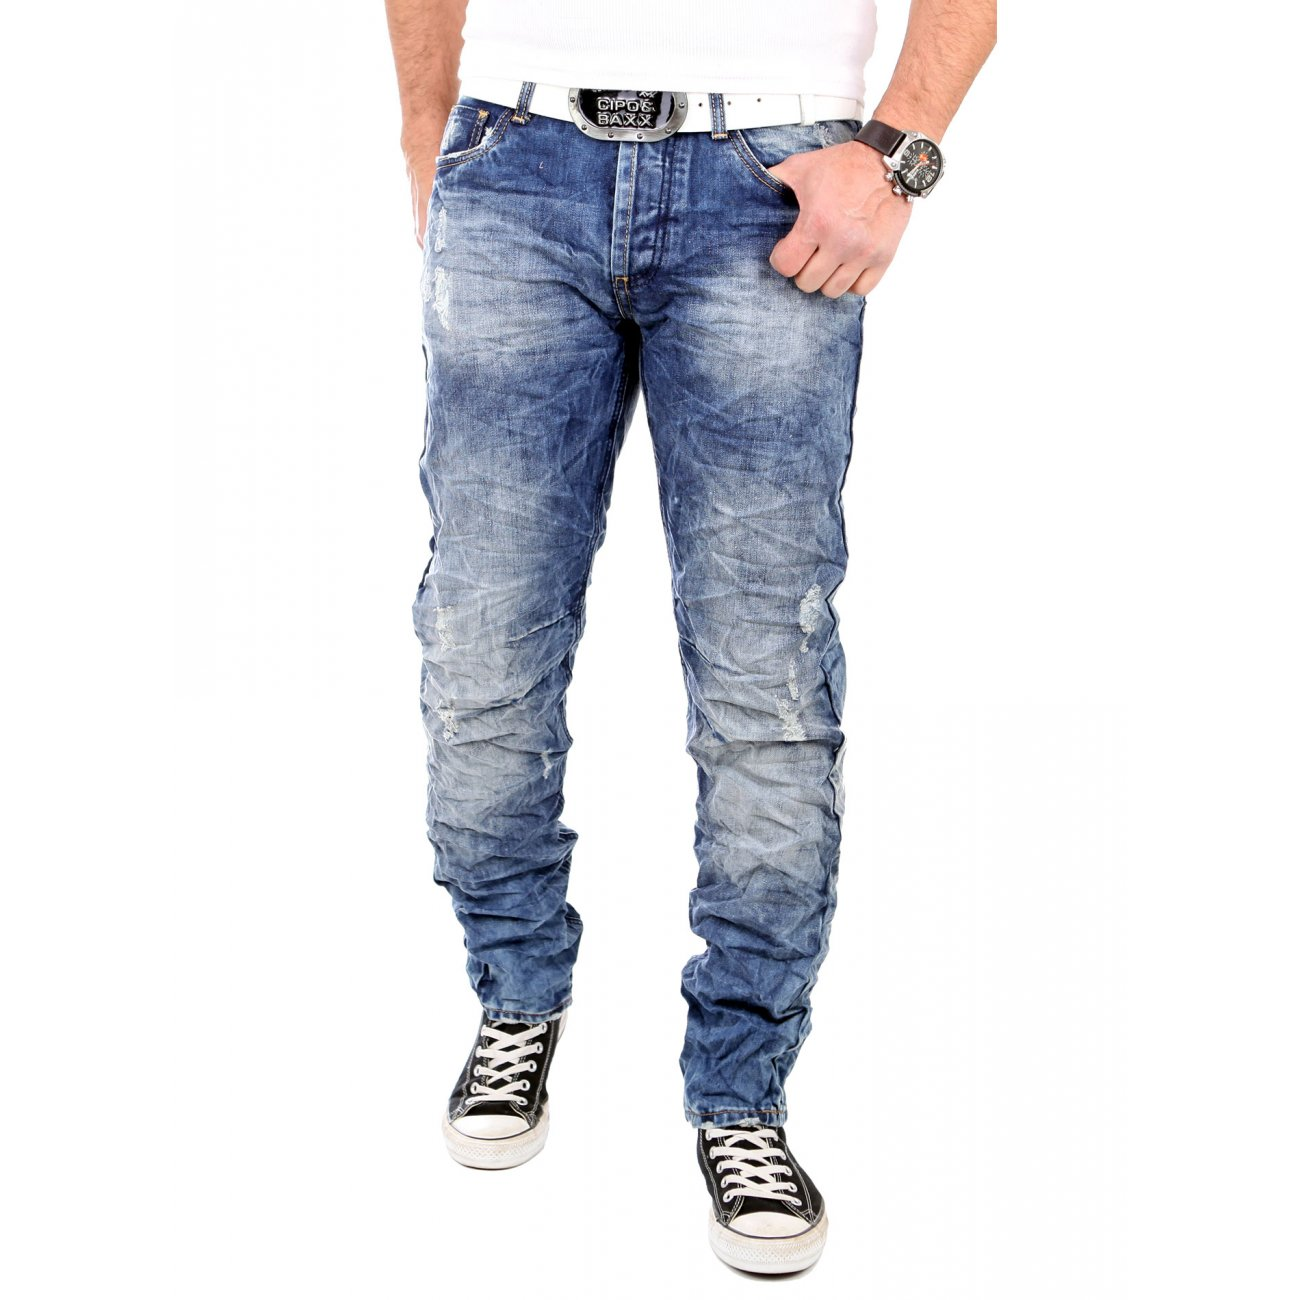 reslad jeans herren slim fit hose destroyed style blau. Black Bedroom Furniture Sets. Home Design Ideas